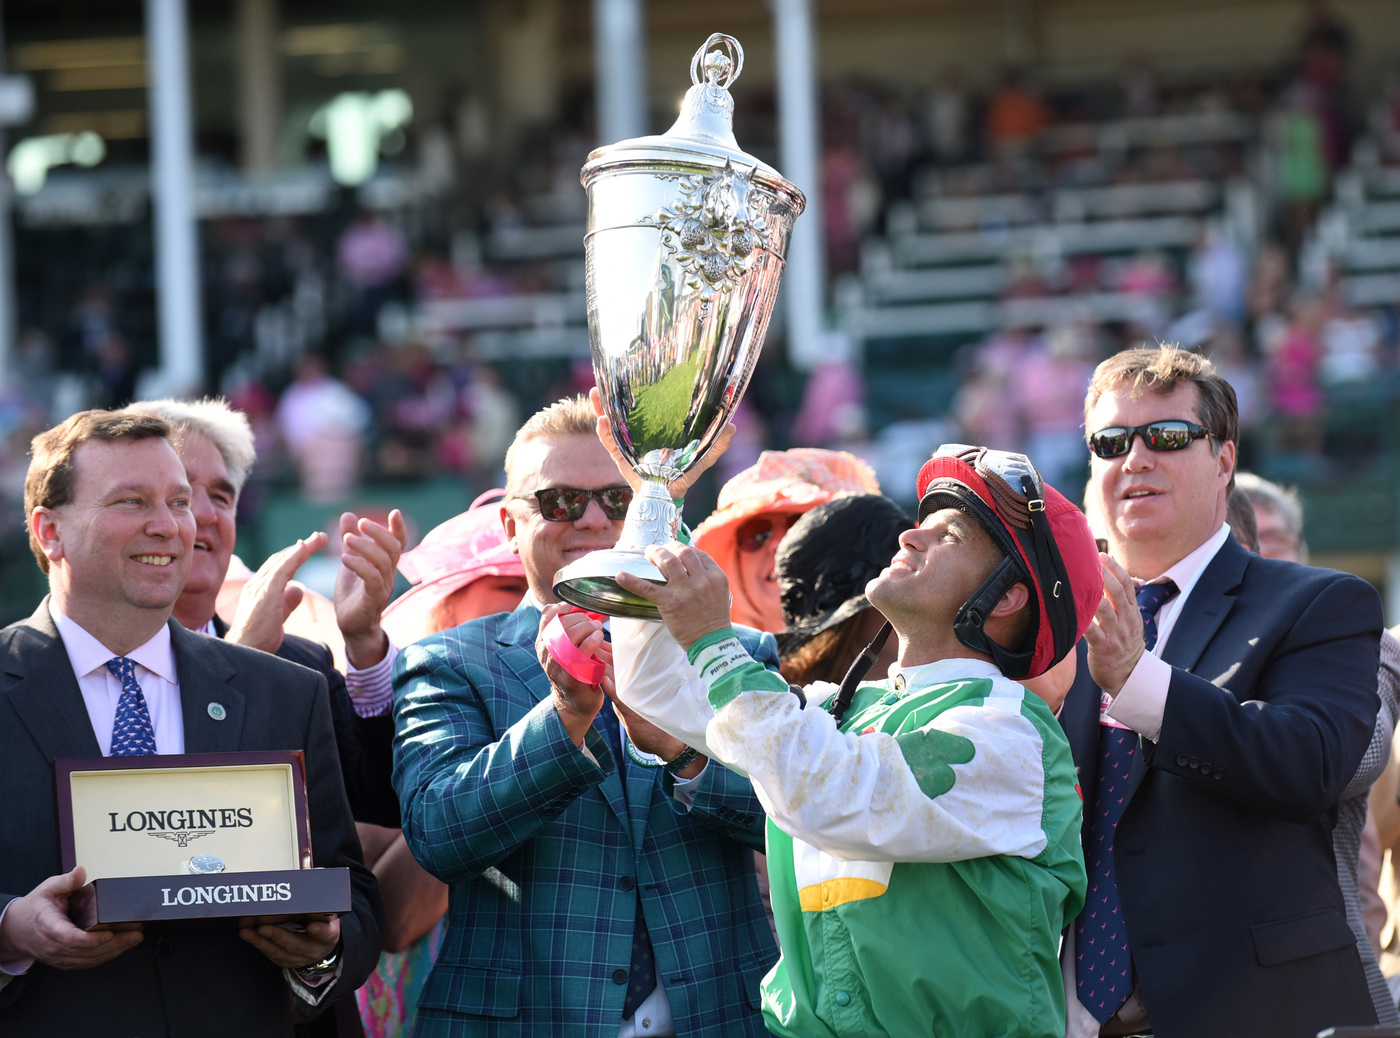 Longines Flat Racing Event: Winner of the 2016 Longines Kentucky Oaks Race Celebrated by Swiss Watch Brand Longines in front of record crowd 5